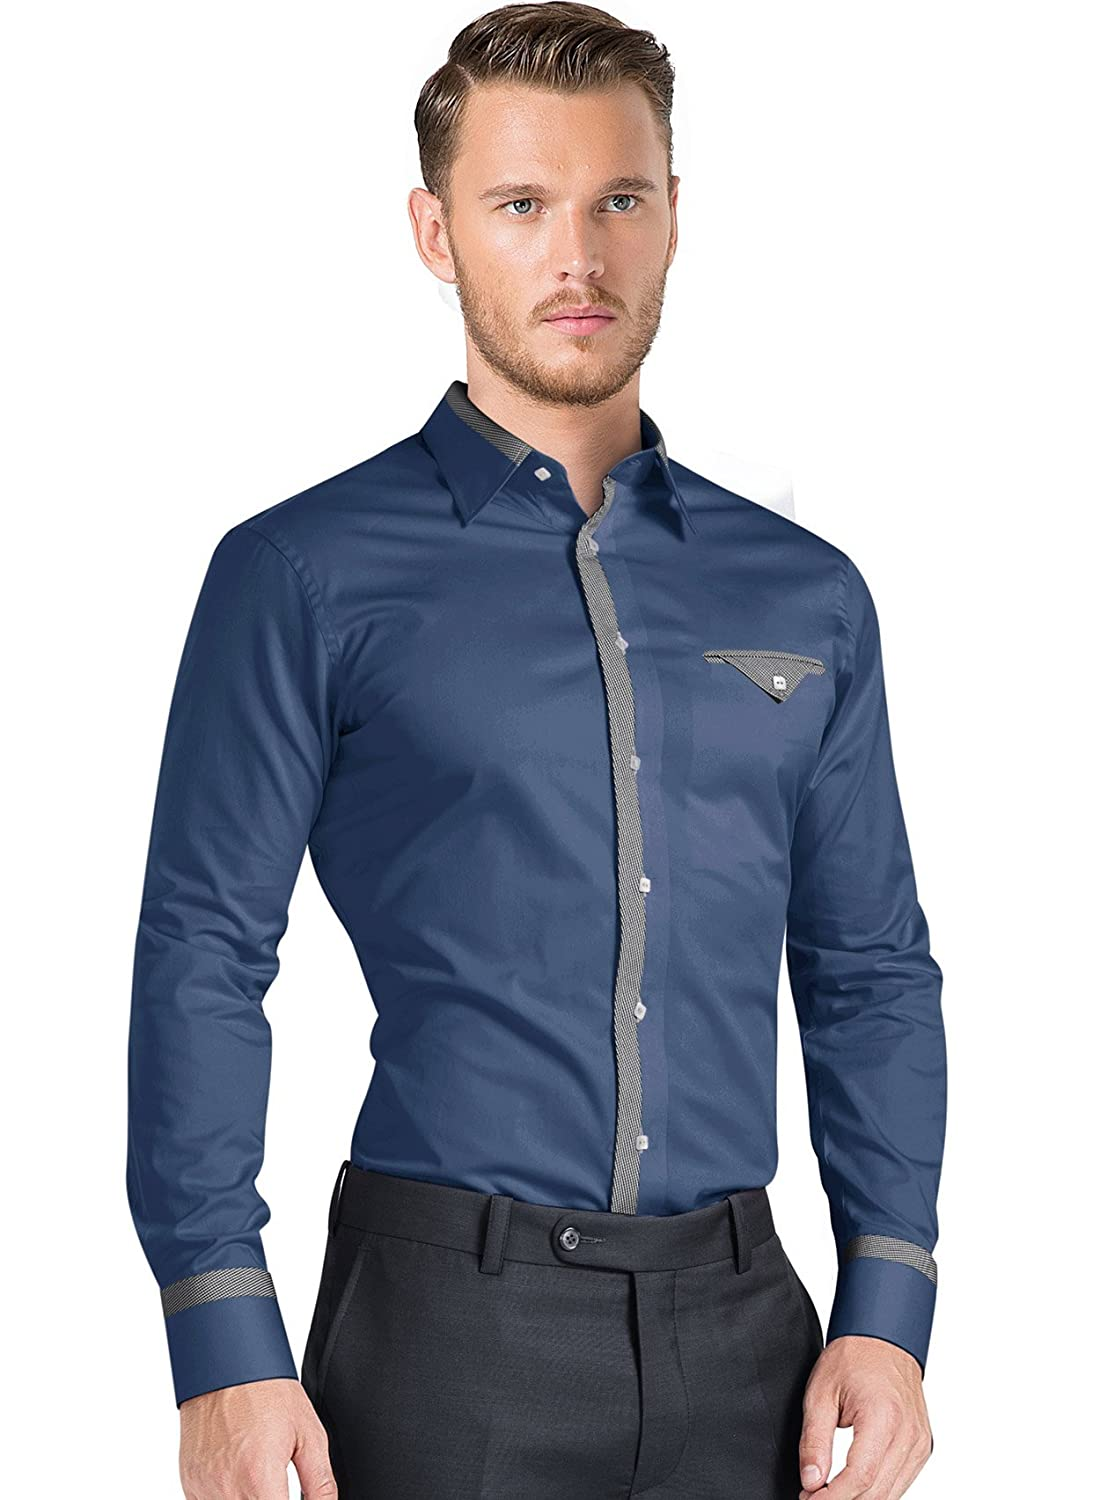 iTailor Mens Cotton Shirt with Stylish Grey Contrast